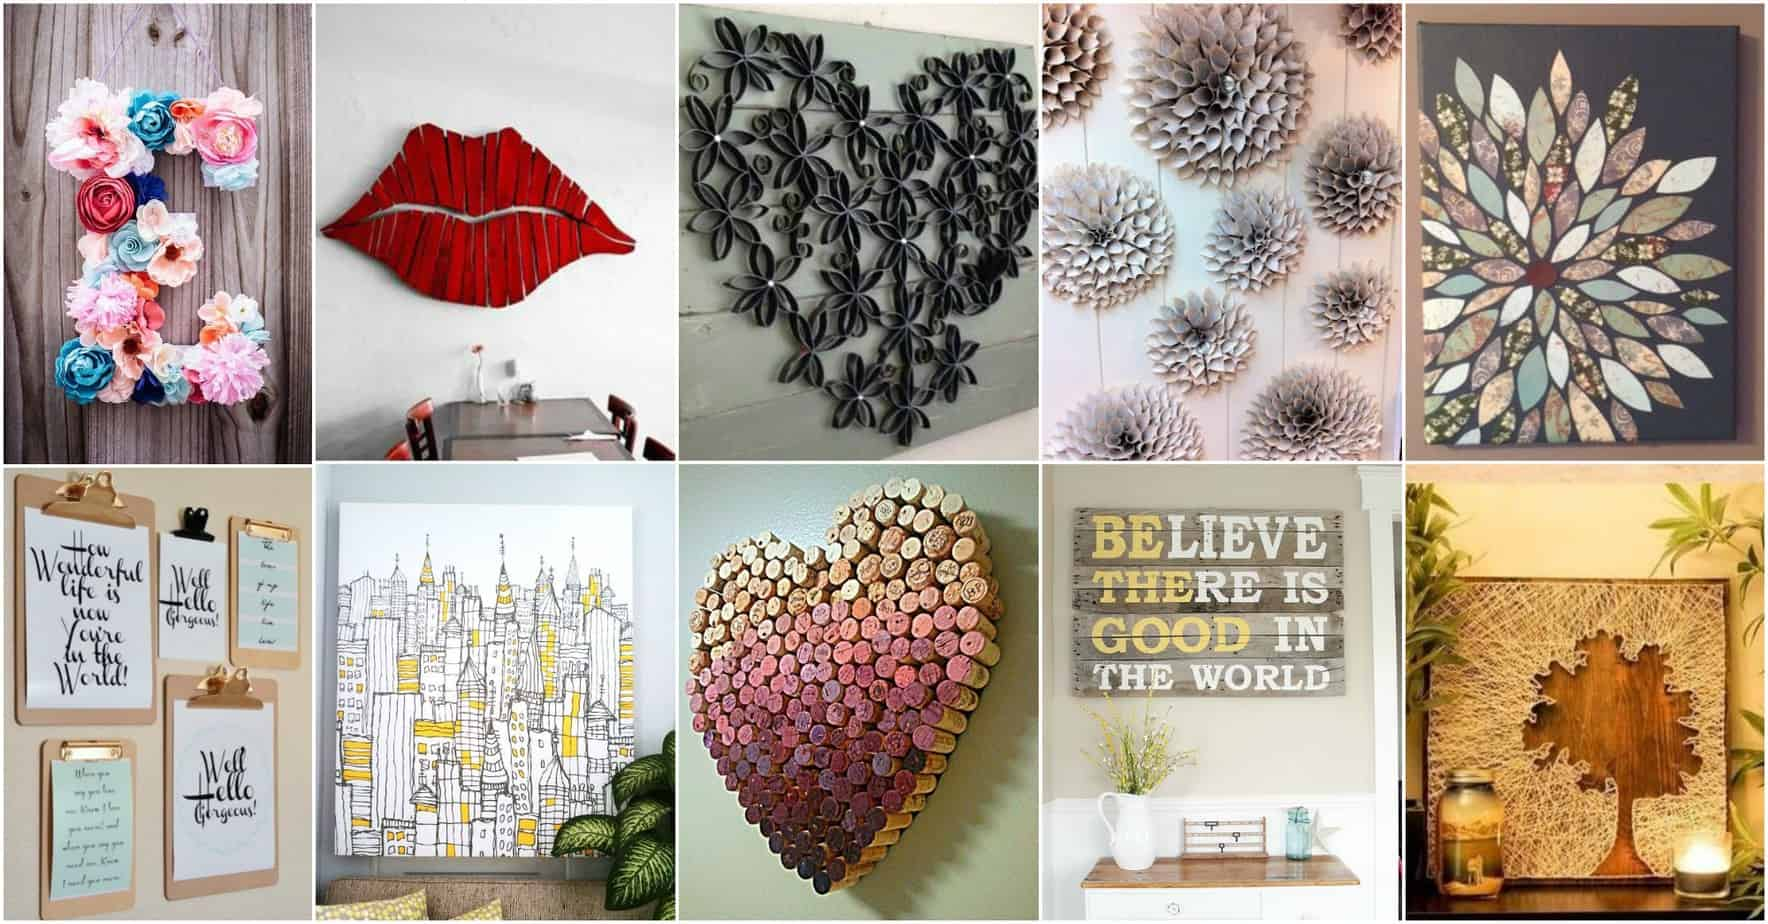 More Amazing Diy Wall Art Ideas Diy Cozy Home